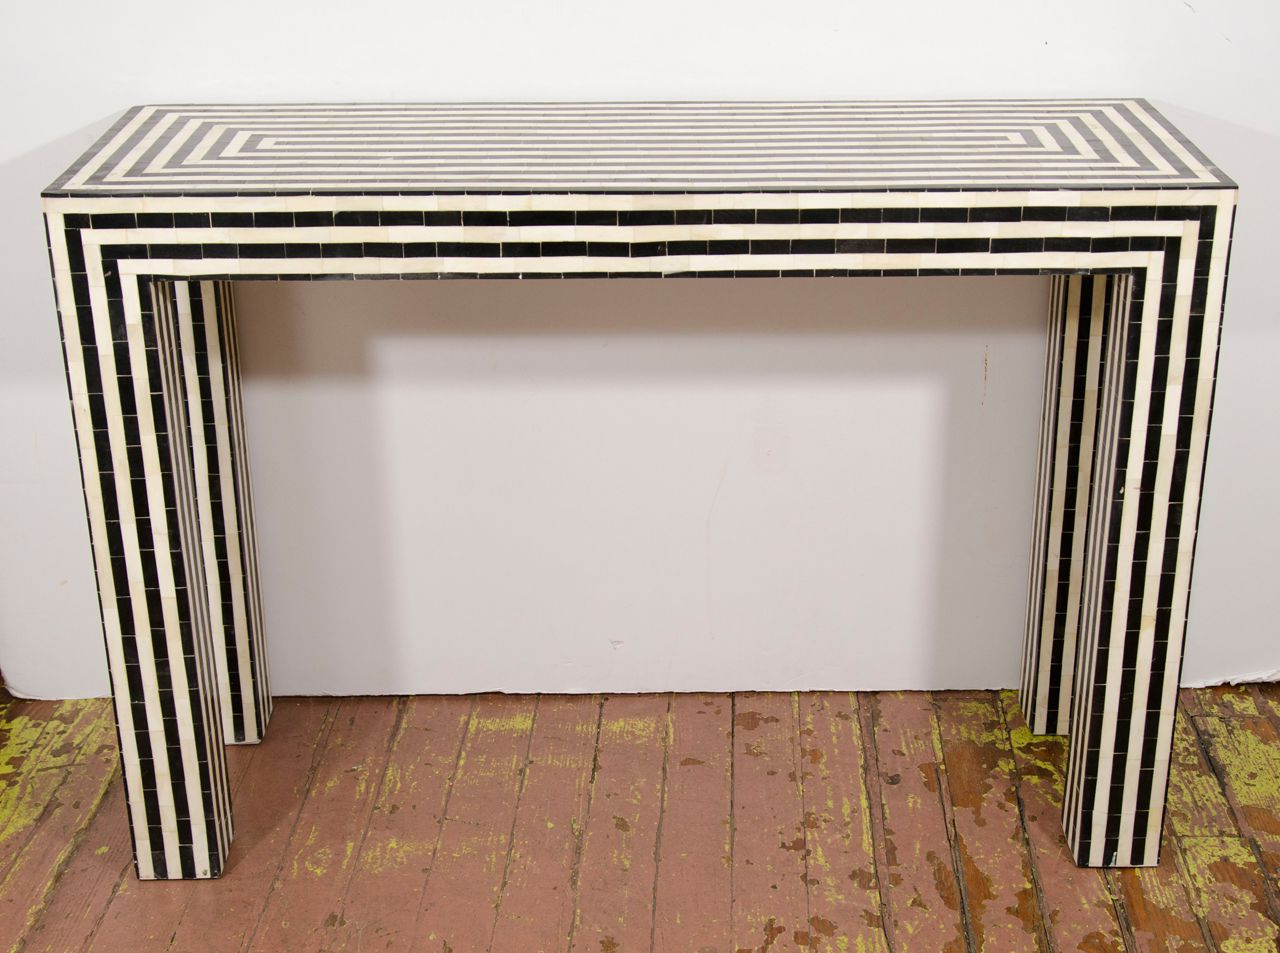 Indian Bone Inlay Black & White Striped Console | Furnishings Throughout Black And White Inlay Console Tables (View 9 of 20)